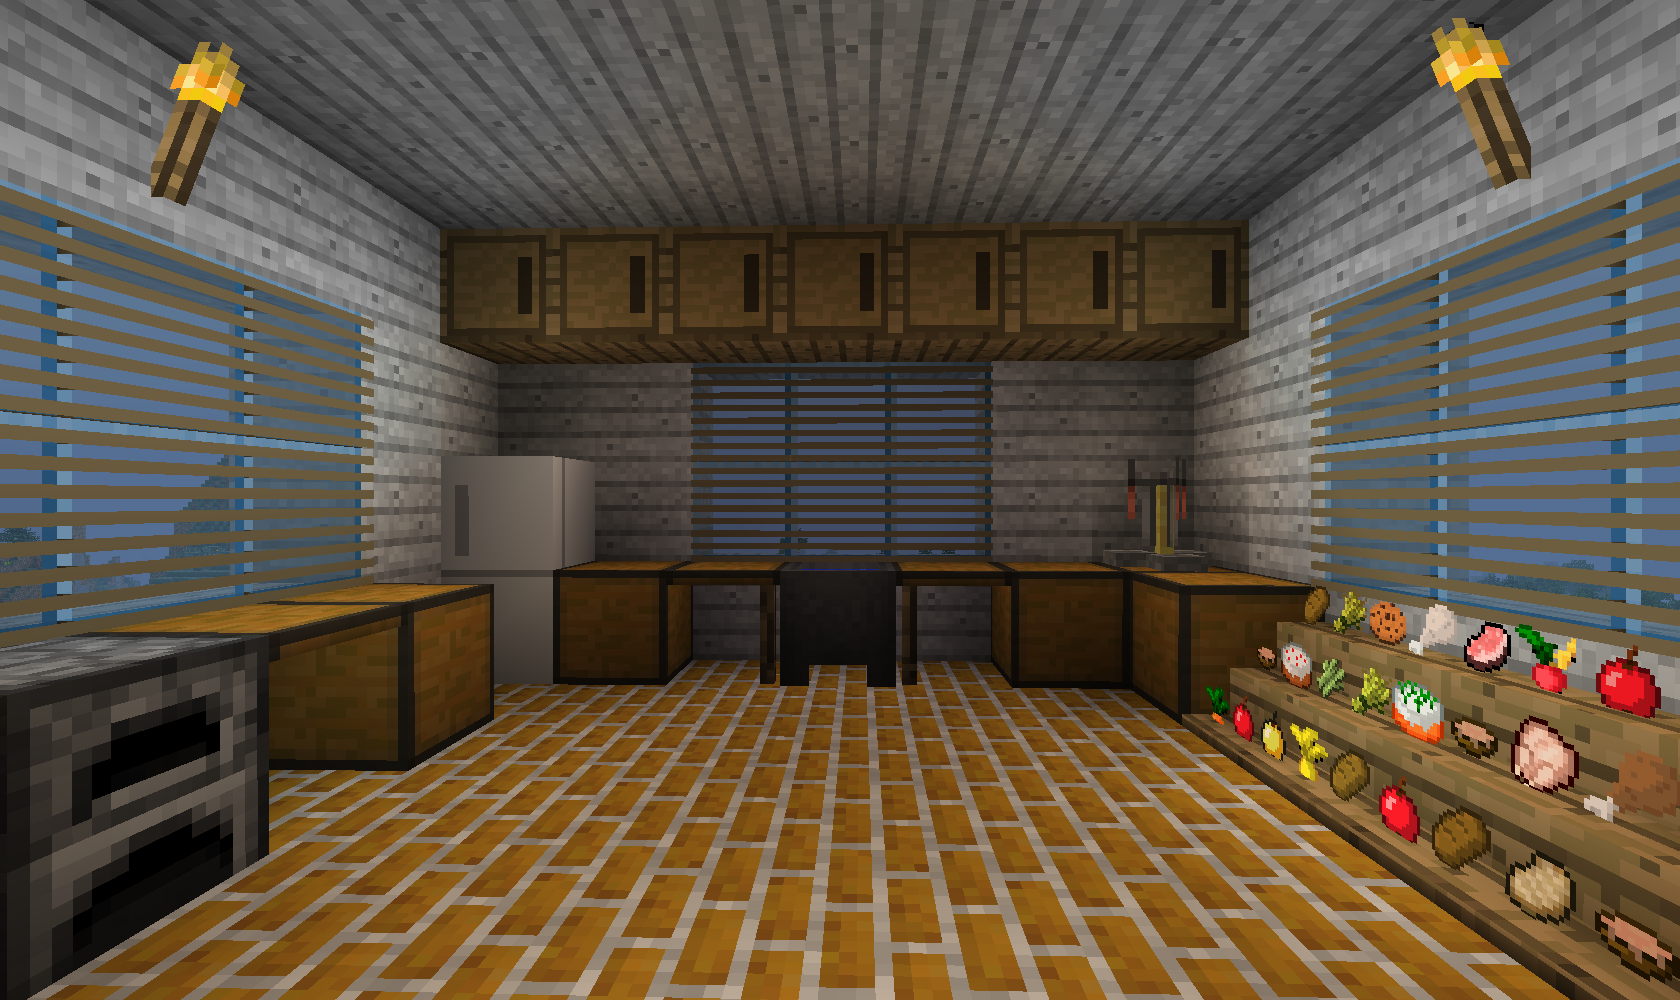 Minecraft Kitchen Only Will Use Item Frames For The Food So They Dont  Disapear Part 73